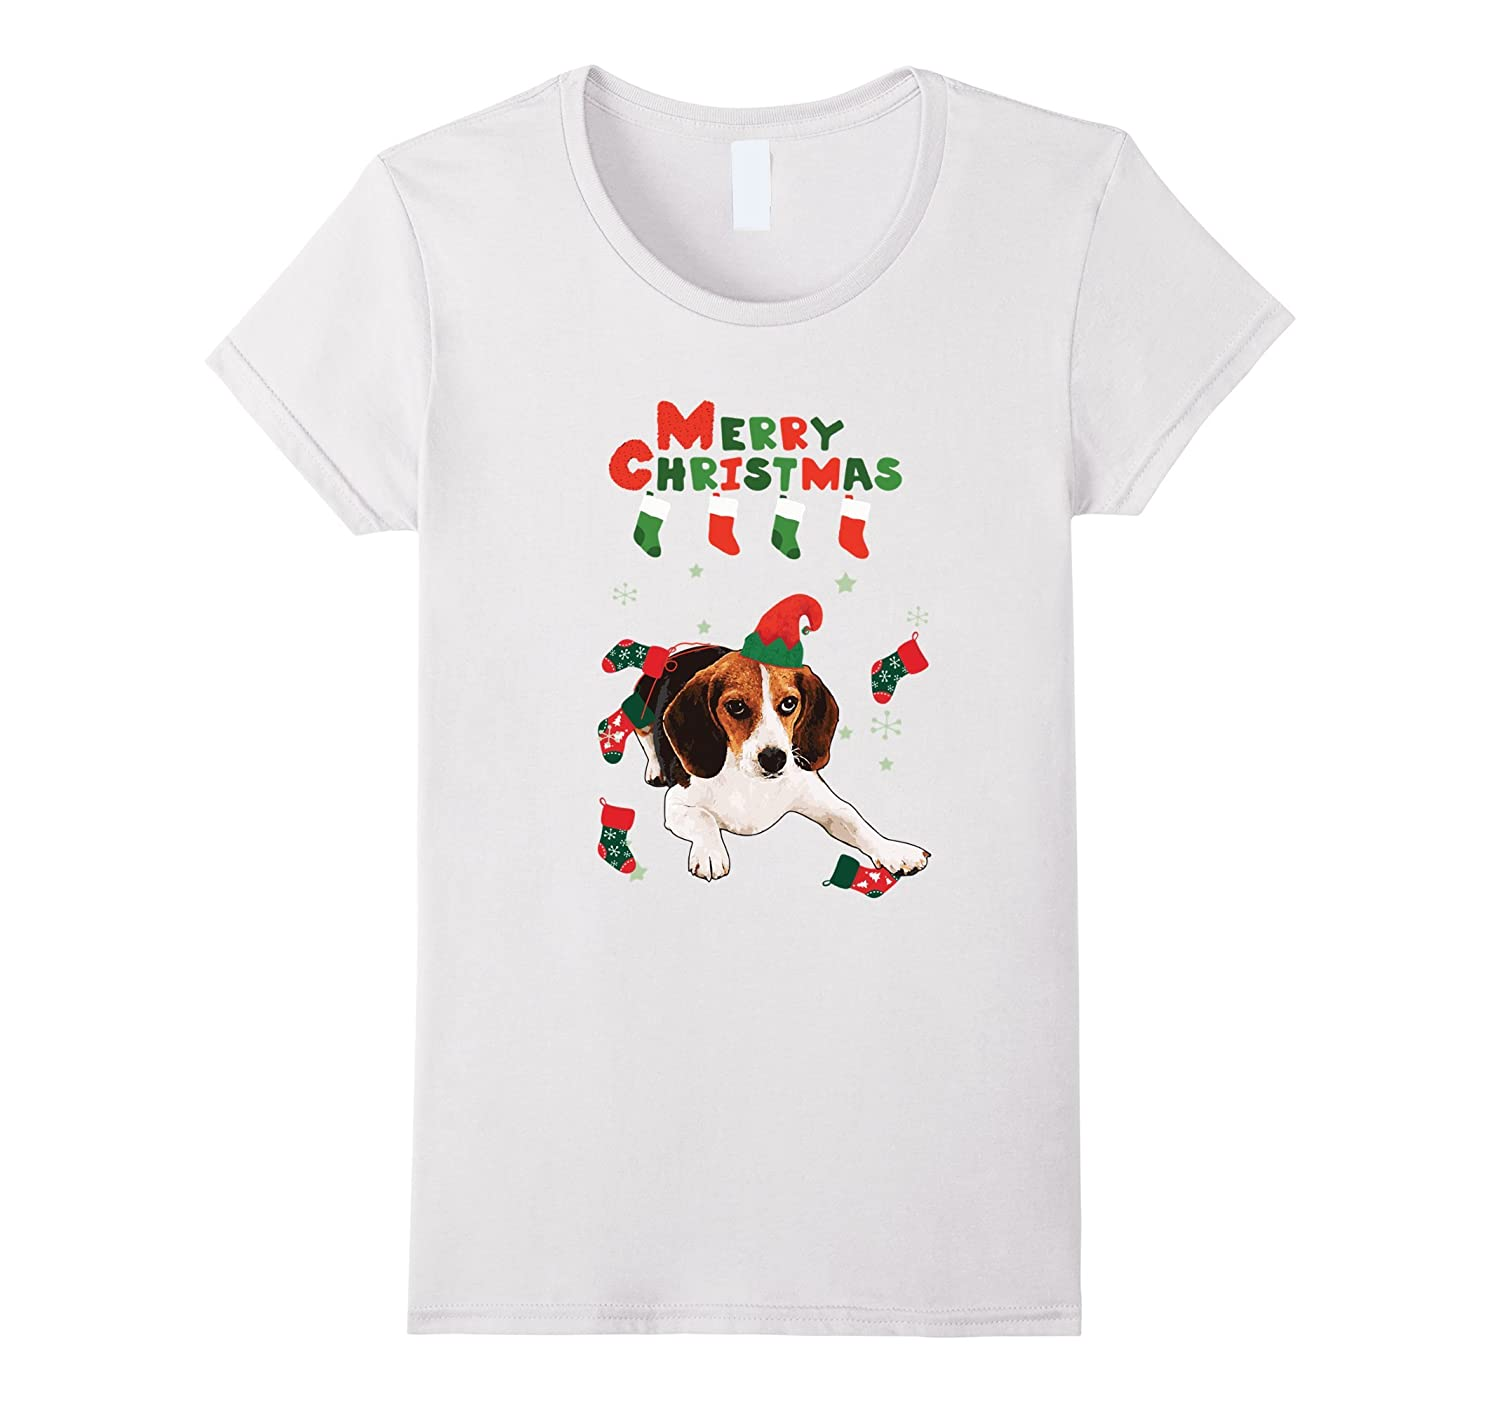 Funny Harrier Merry Christmas Gift Shirt for Harrier lover